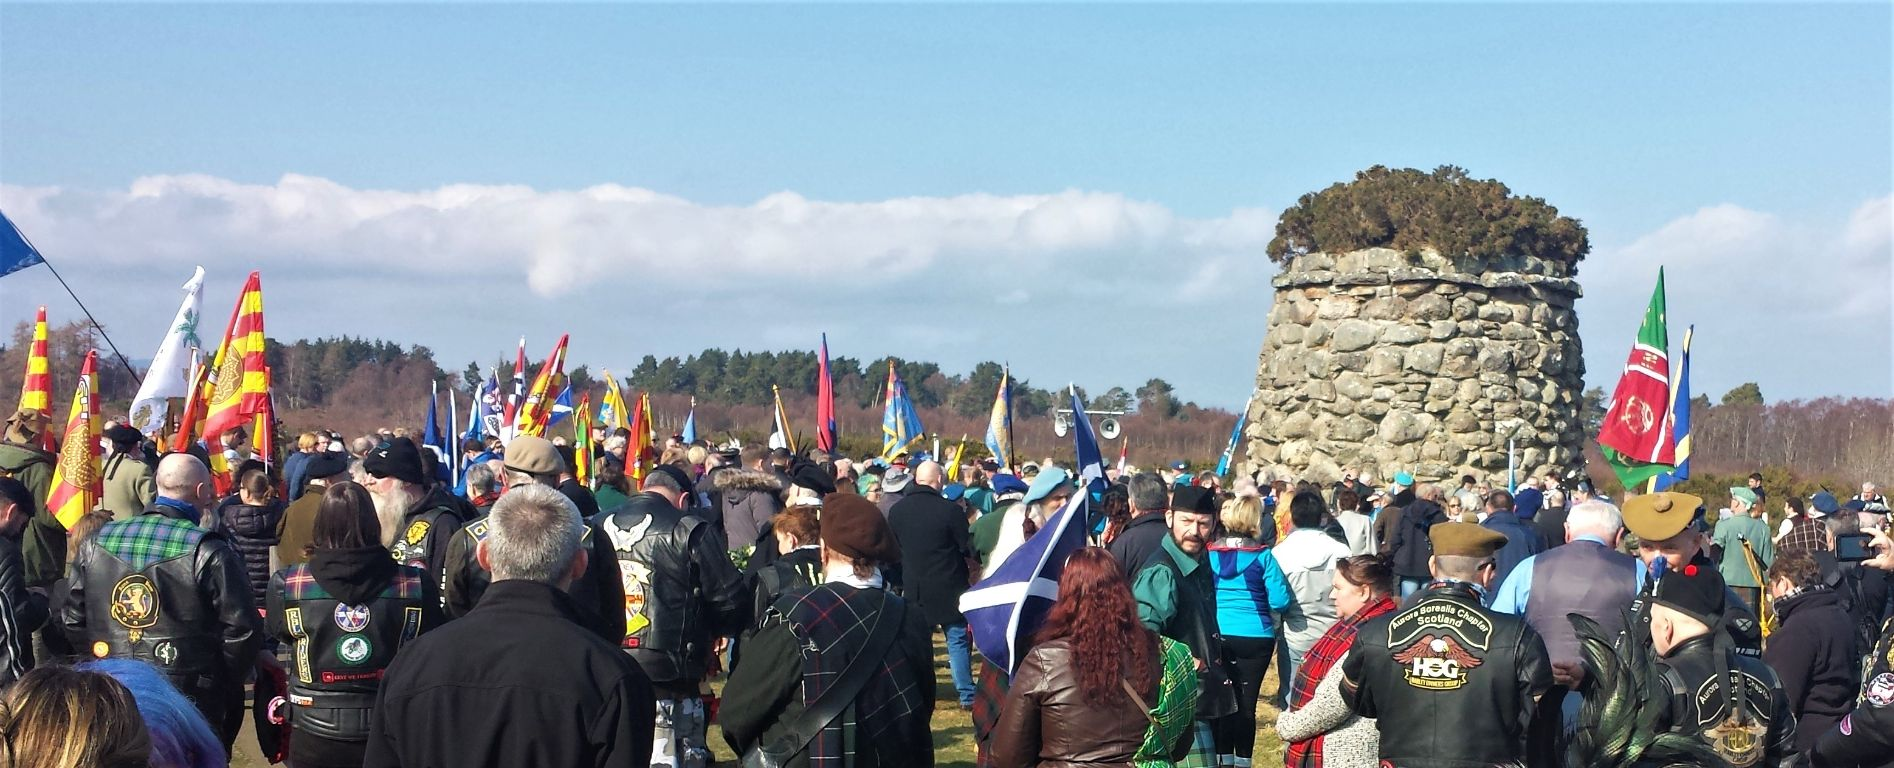 Scottish Clan Tours visit to the annual Anniversary Service at Culloden, by Inverness. A great crowd of people in the foreground with many colourful flags. The people are in every garb from motorcycle leathers to full traditional kilt. Mid-ground to the right is the main Culloden Memorial, standing 20 feet high with bushes on top. In the background is a forest, above which are light clouds and a blue sky.